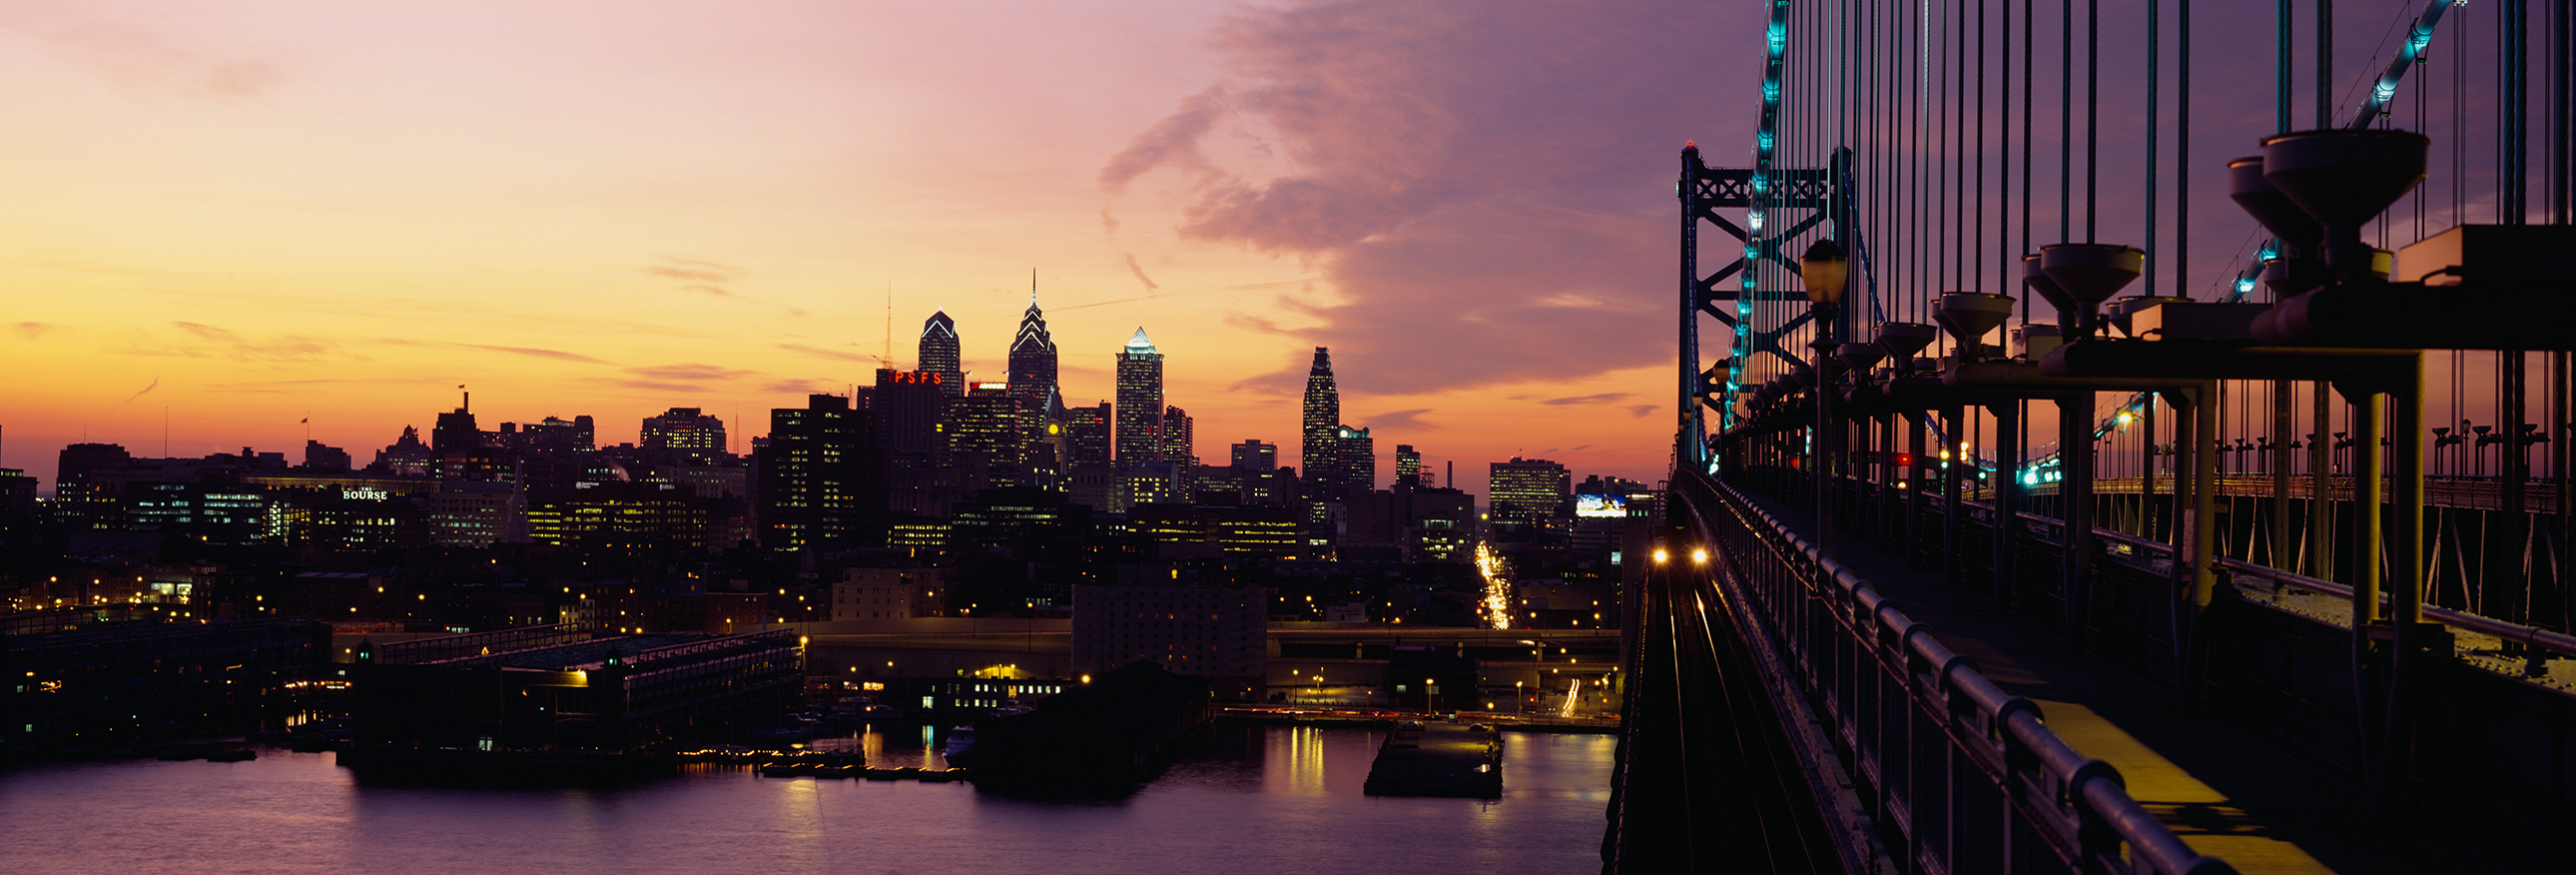 View of Philadelphia skyline at sunset